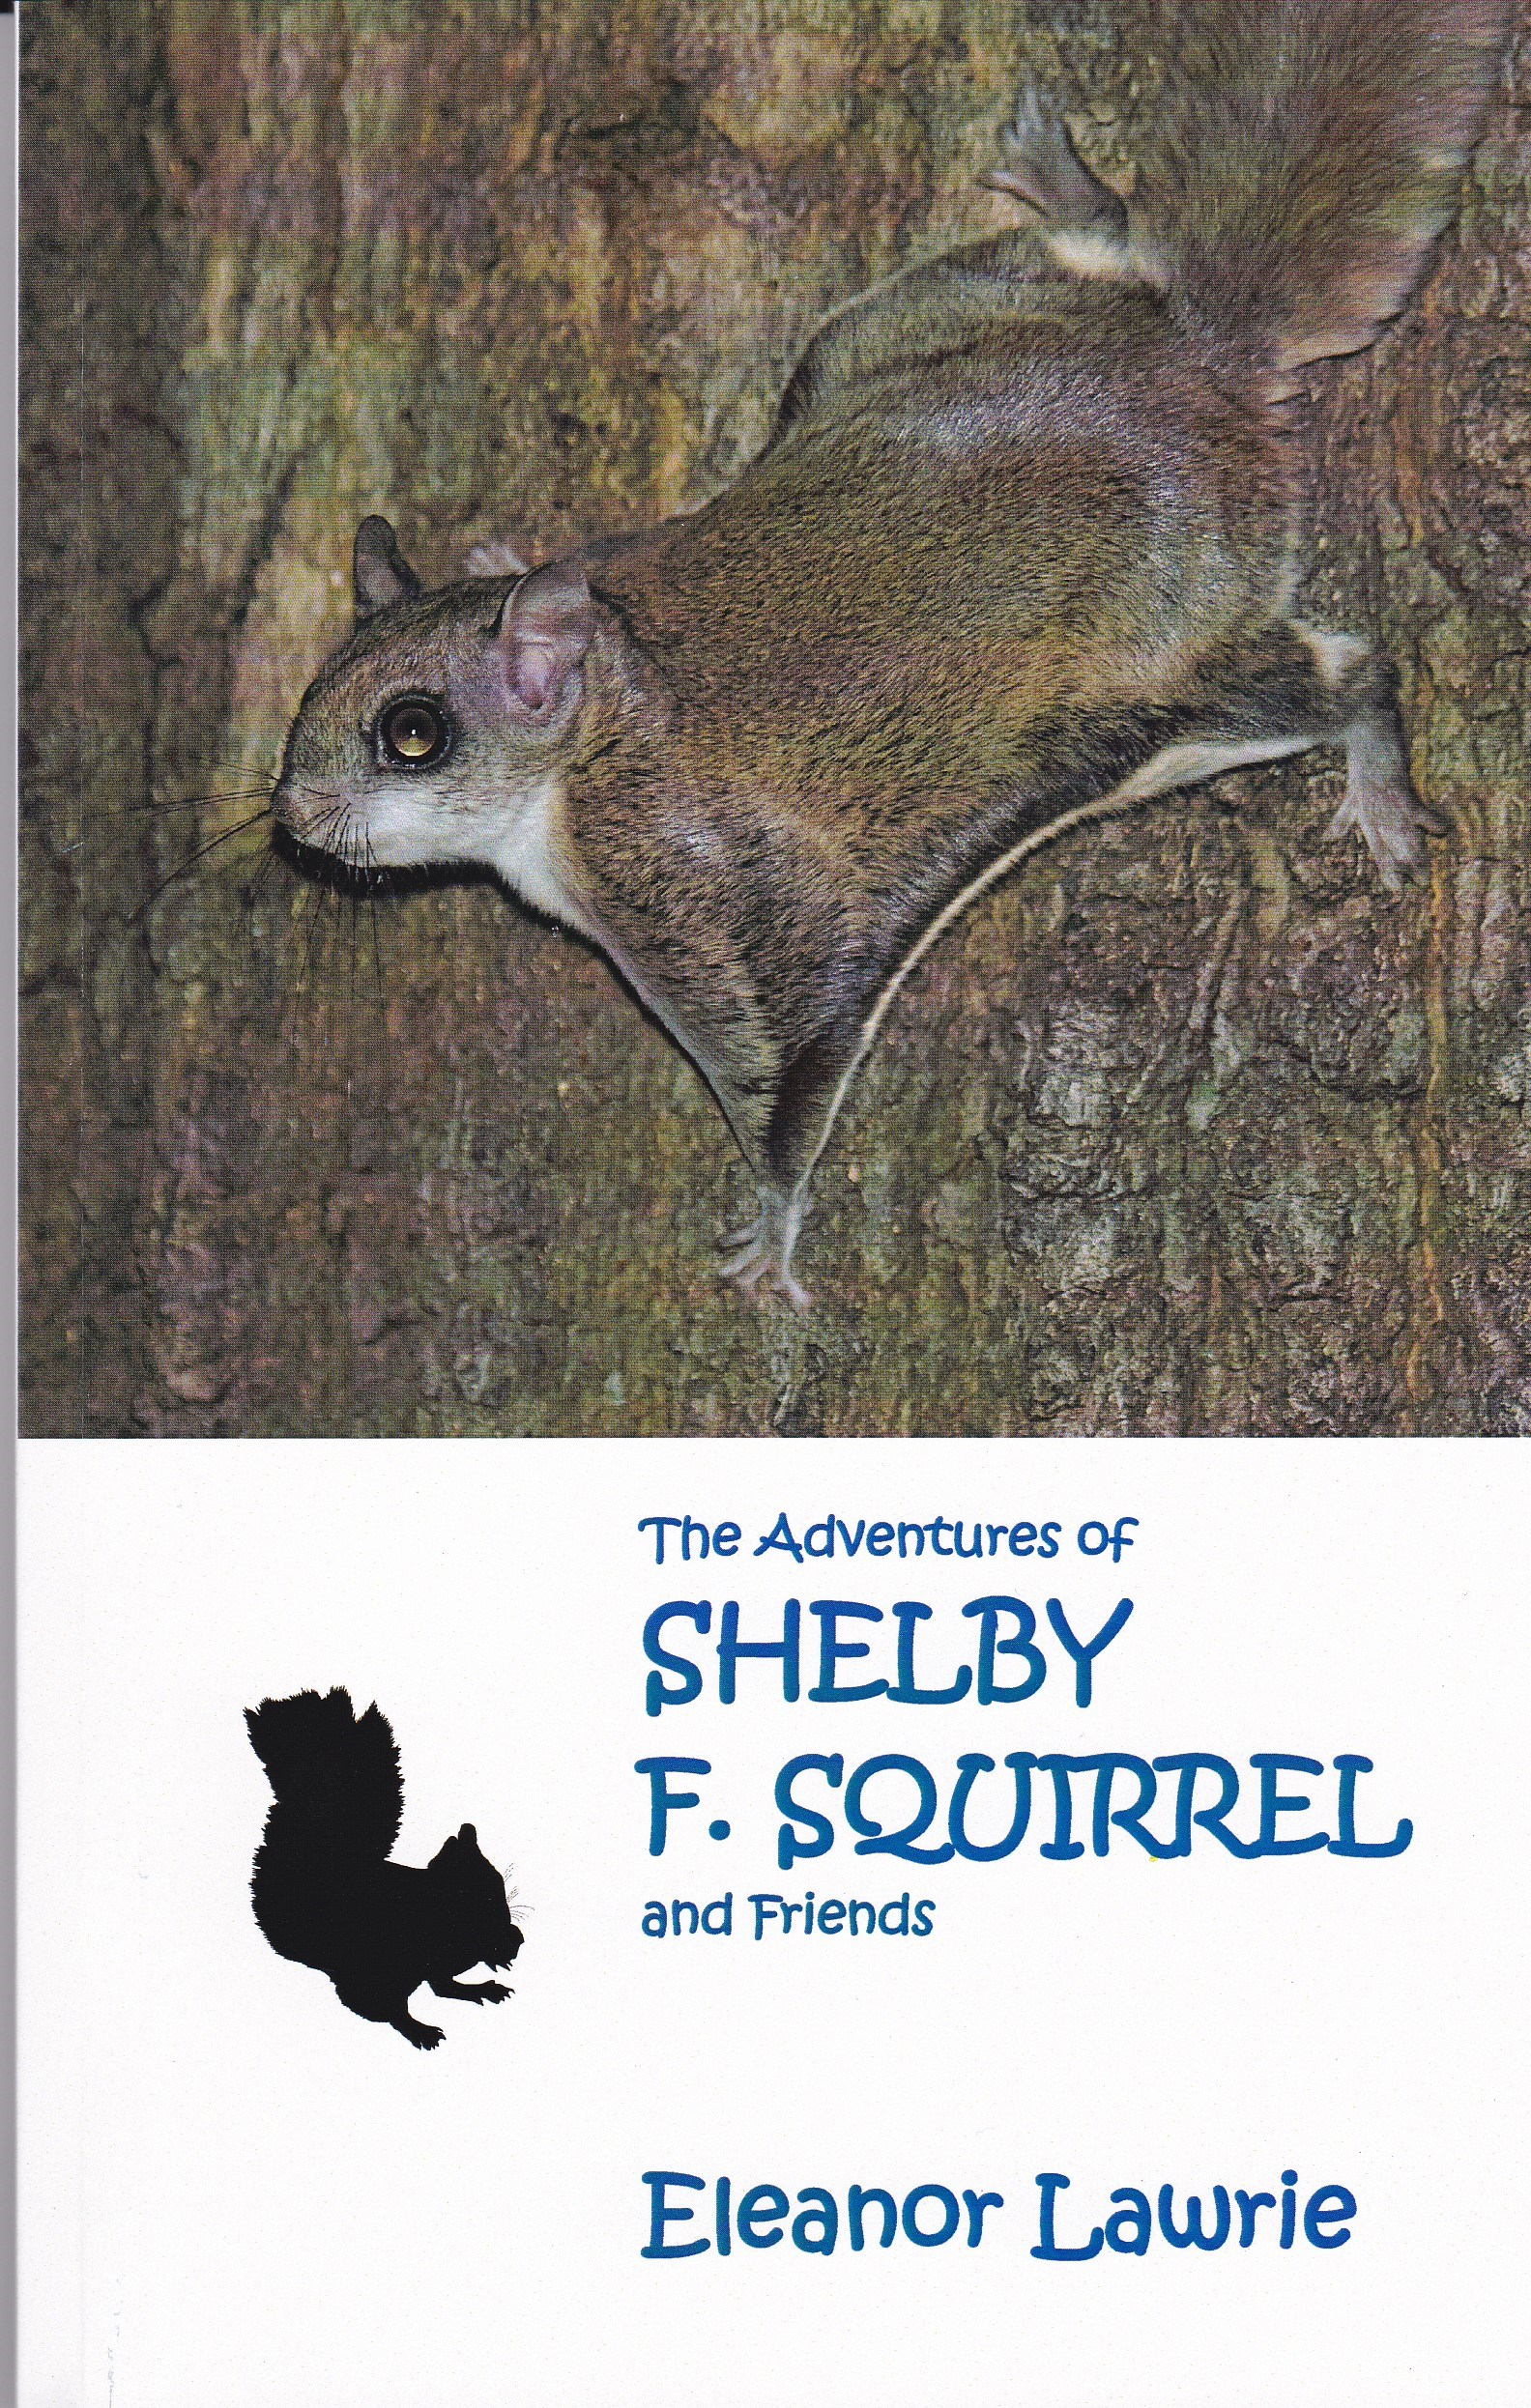 Shelby F. Squirrel COVER